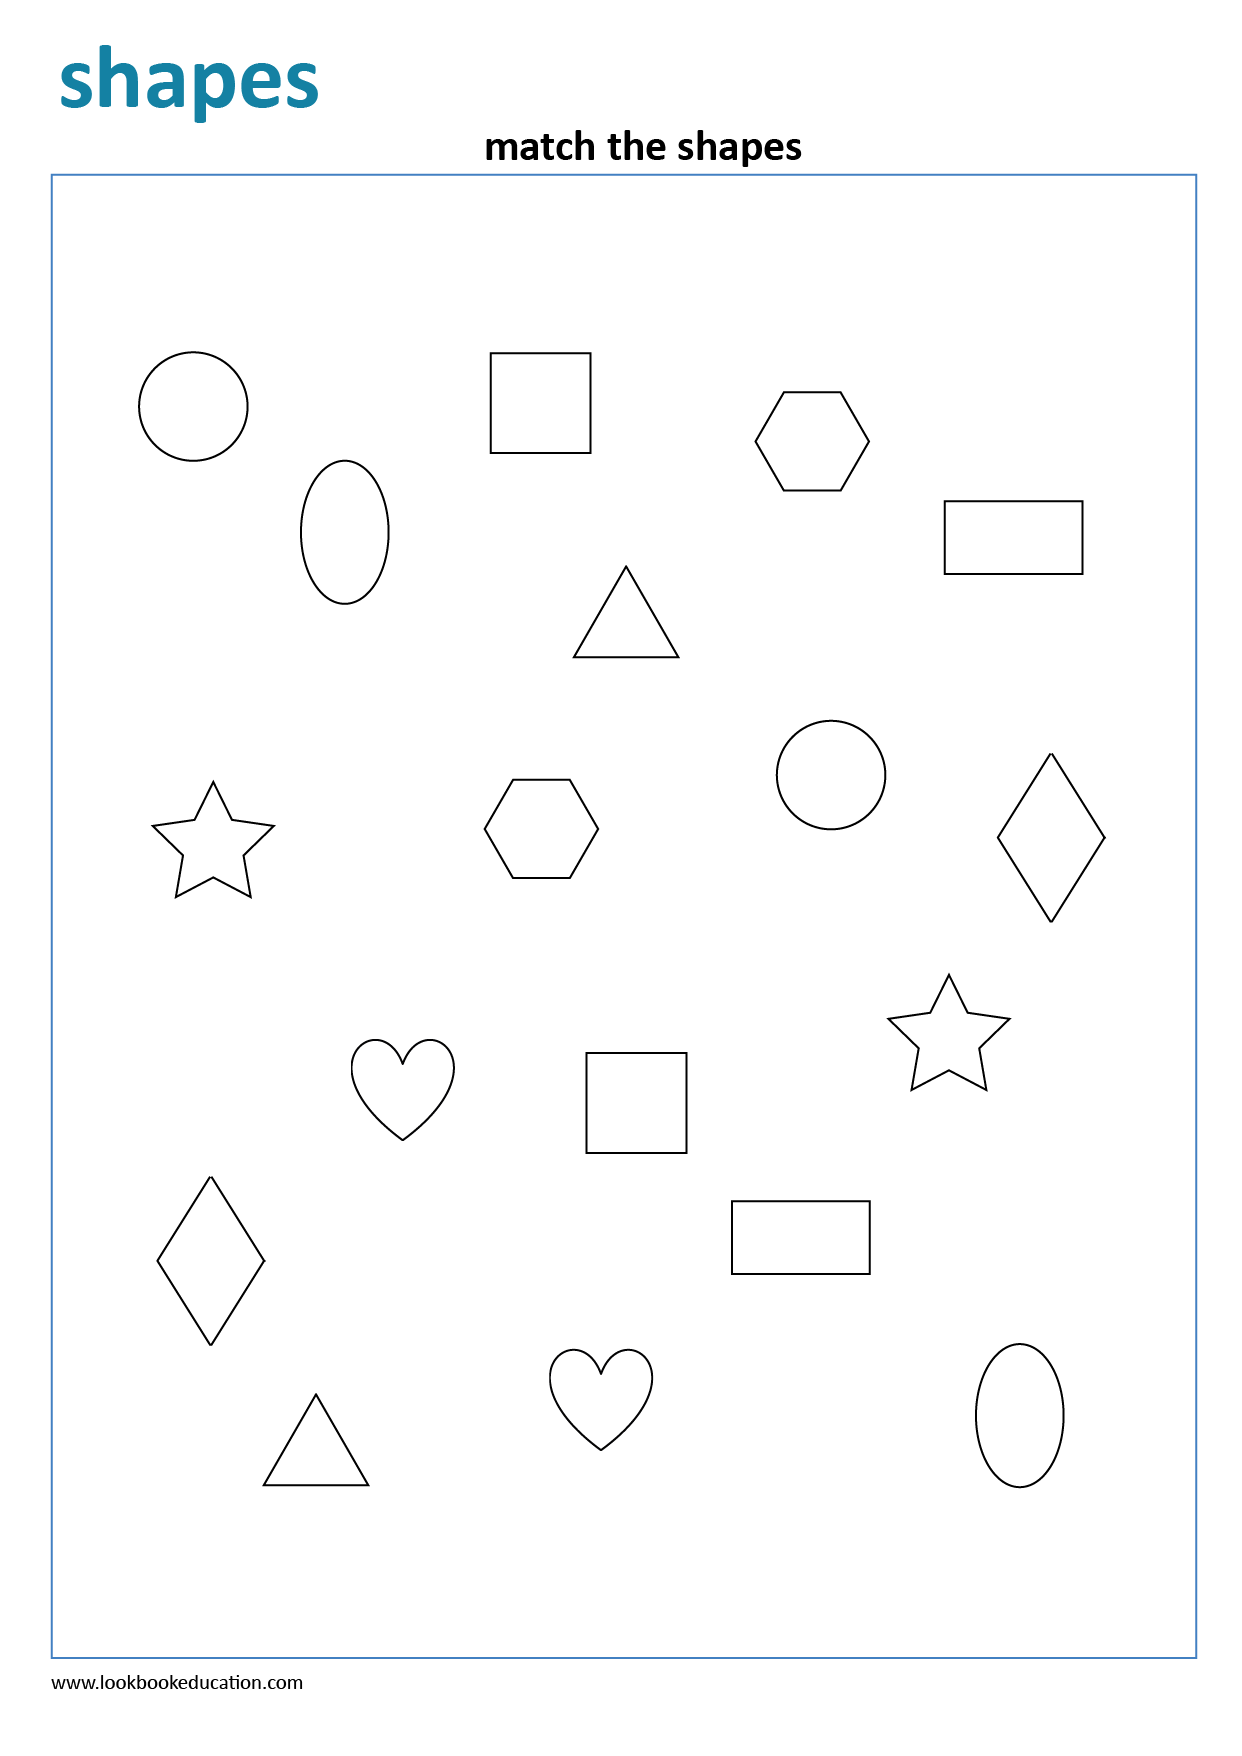 Worksheet Matching Shapes